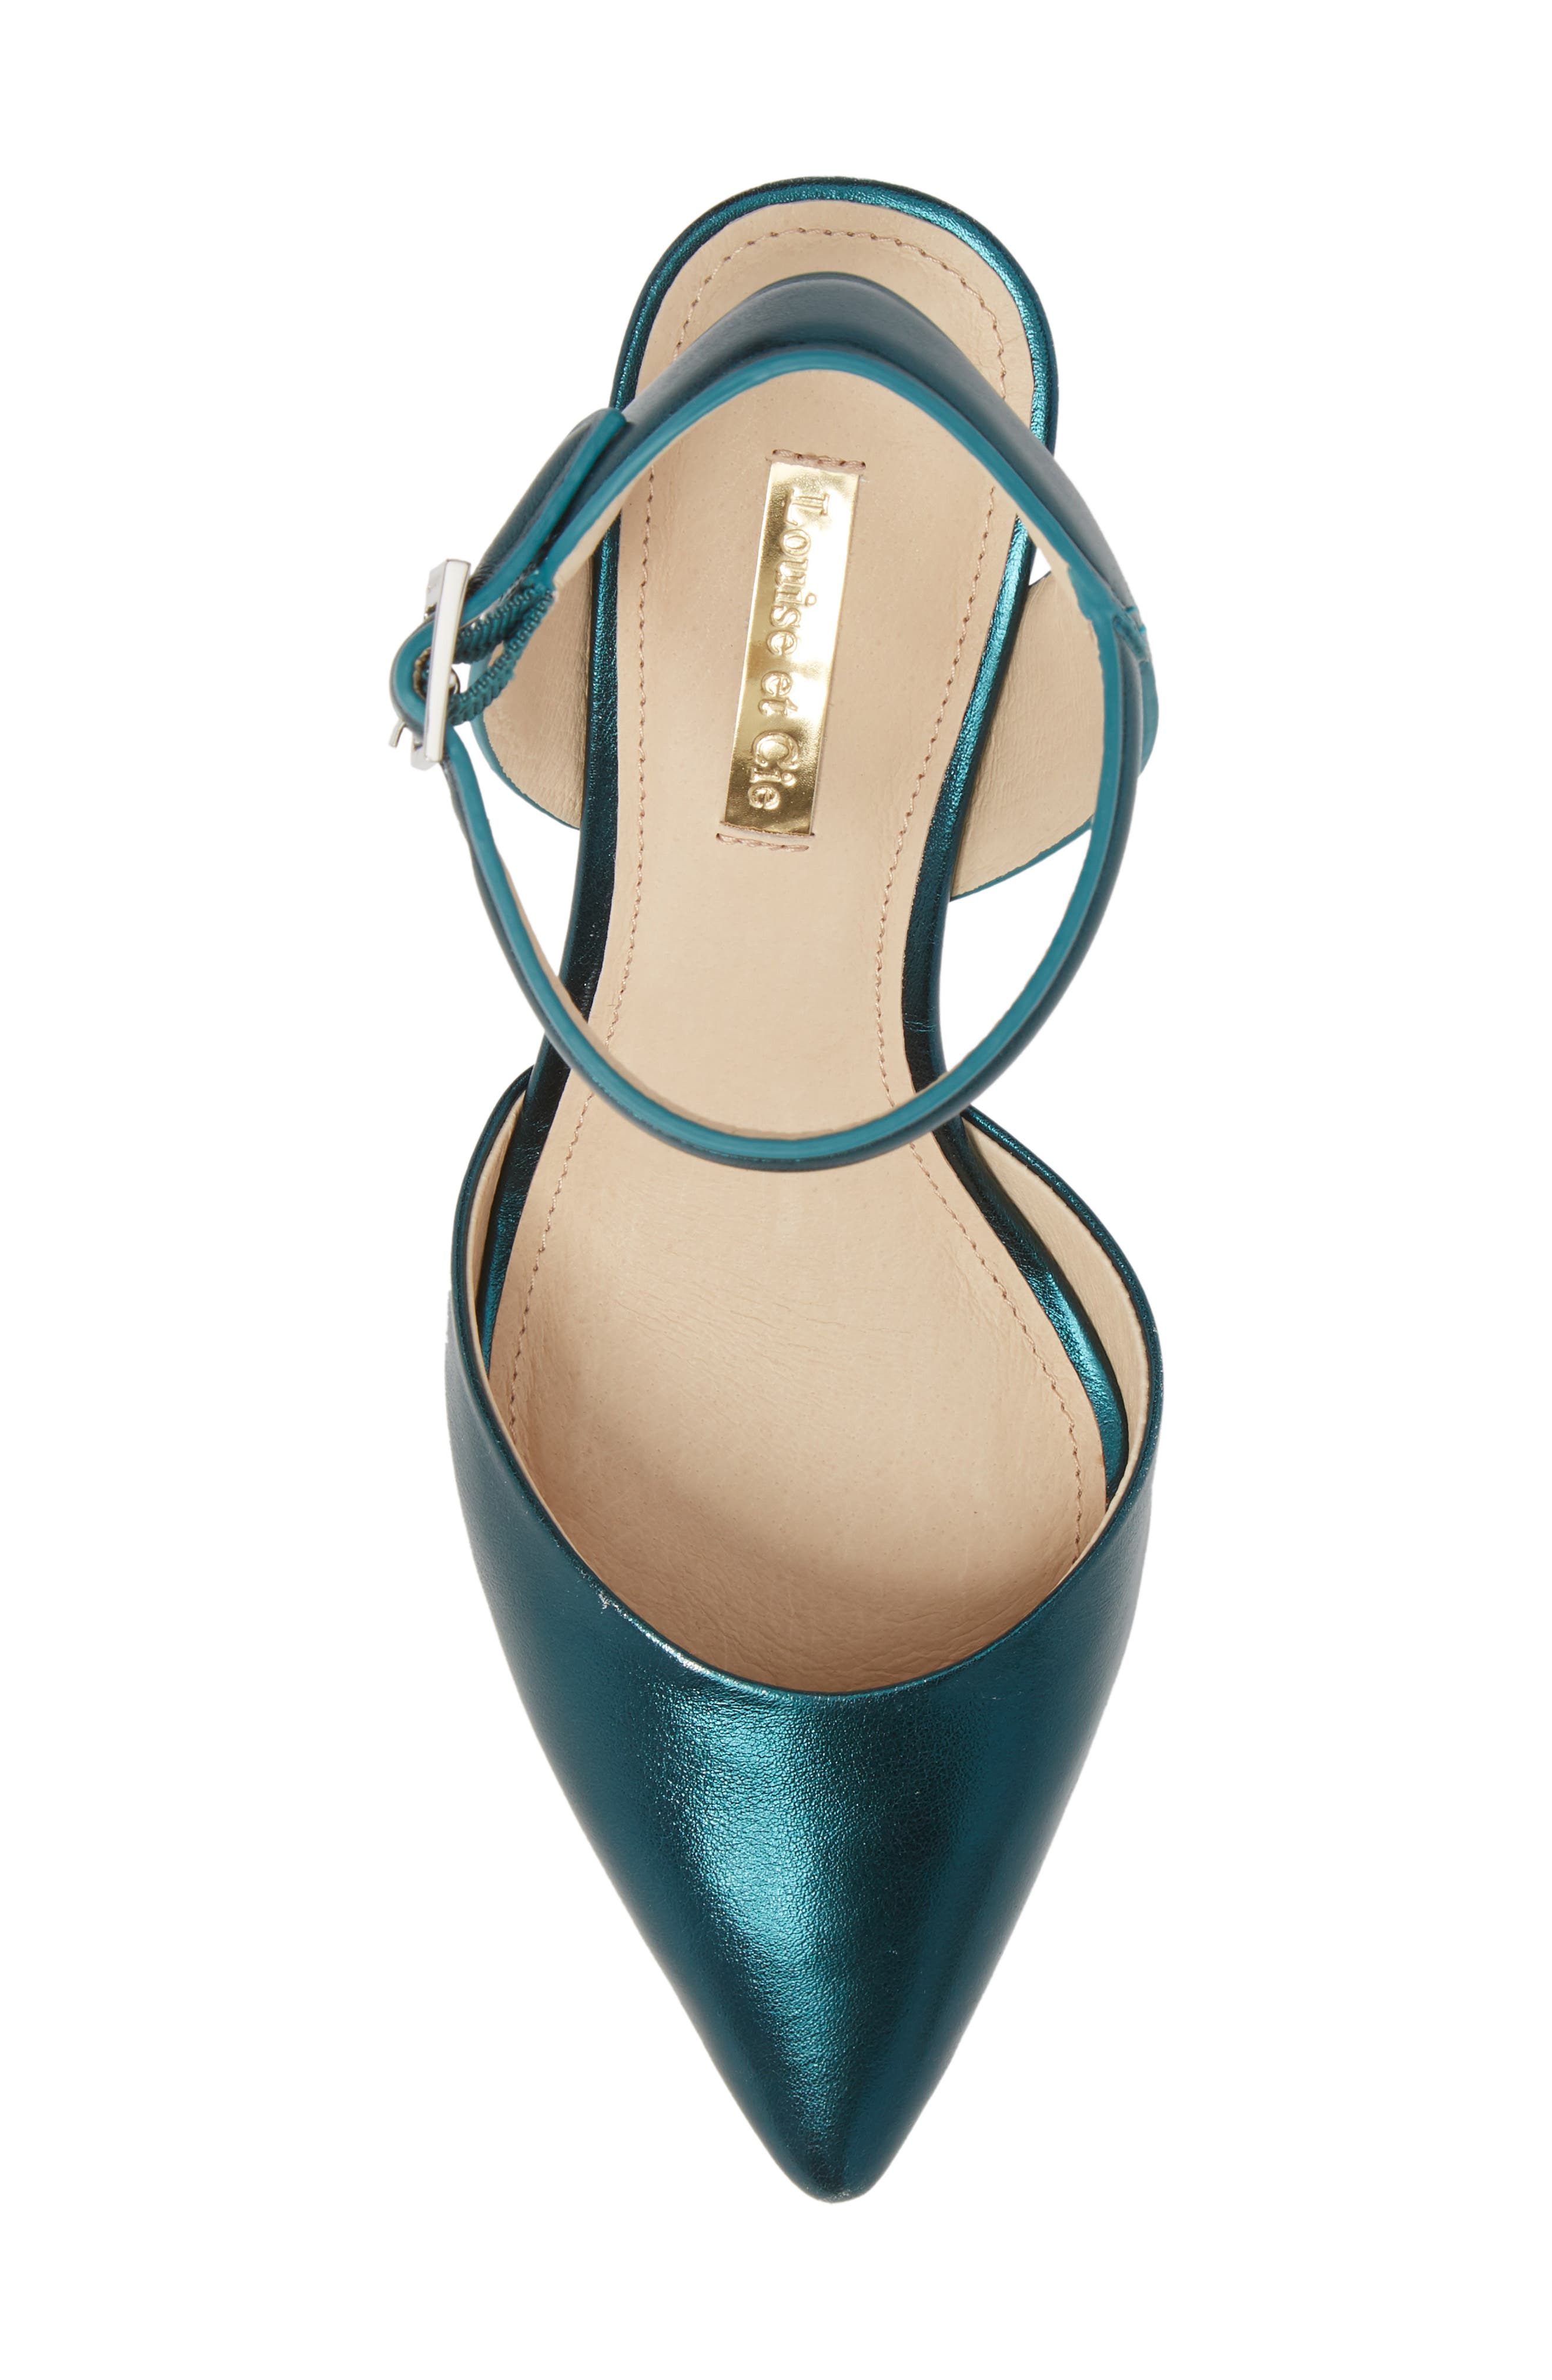 Kota Ankle Strap Pump,                             Alternate thumbnail 5, color,                             Teal Metallic Leather